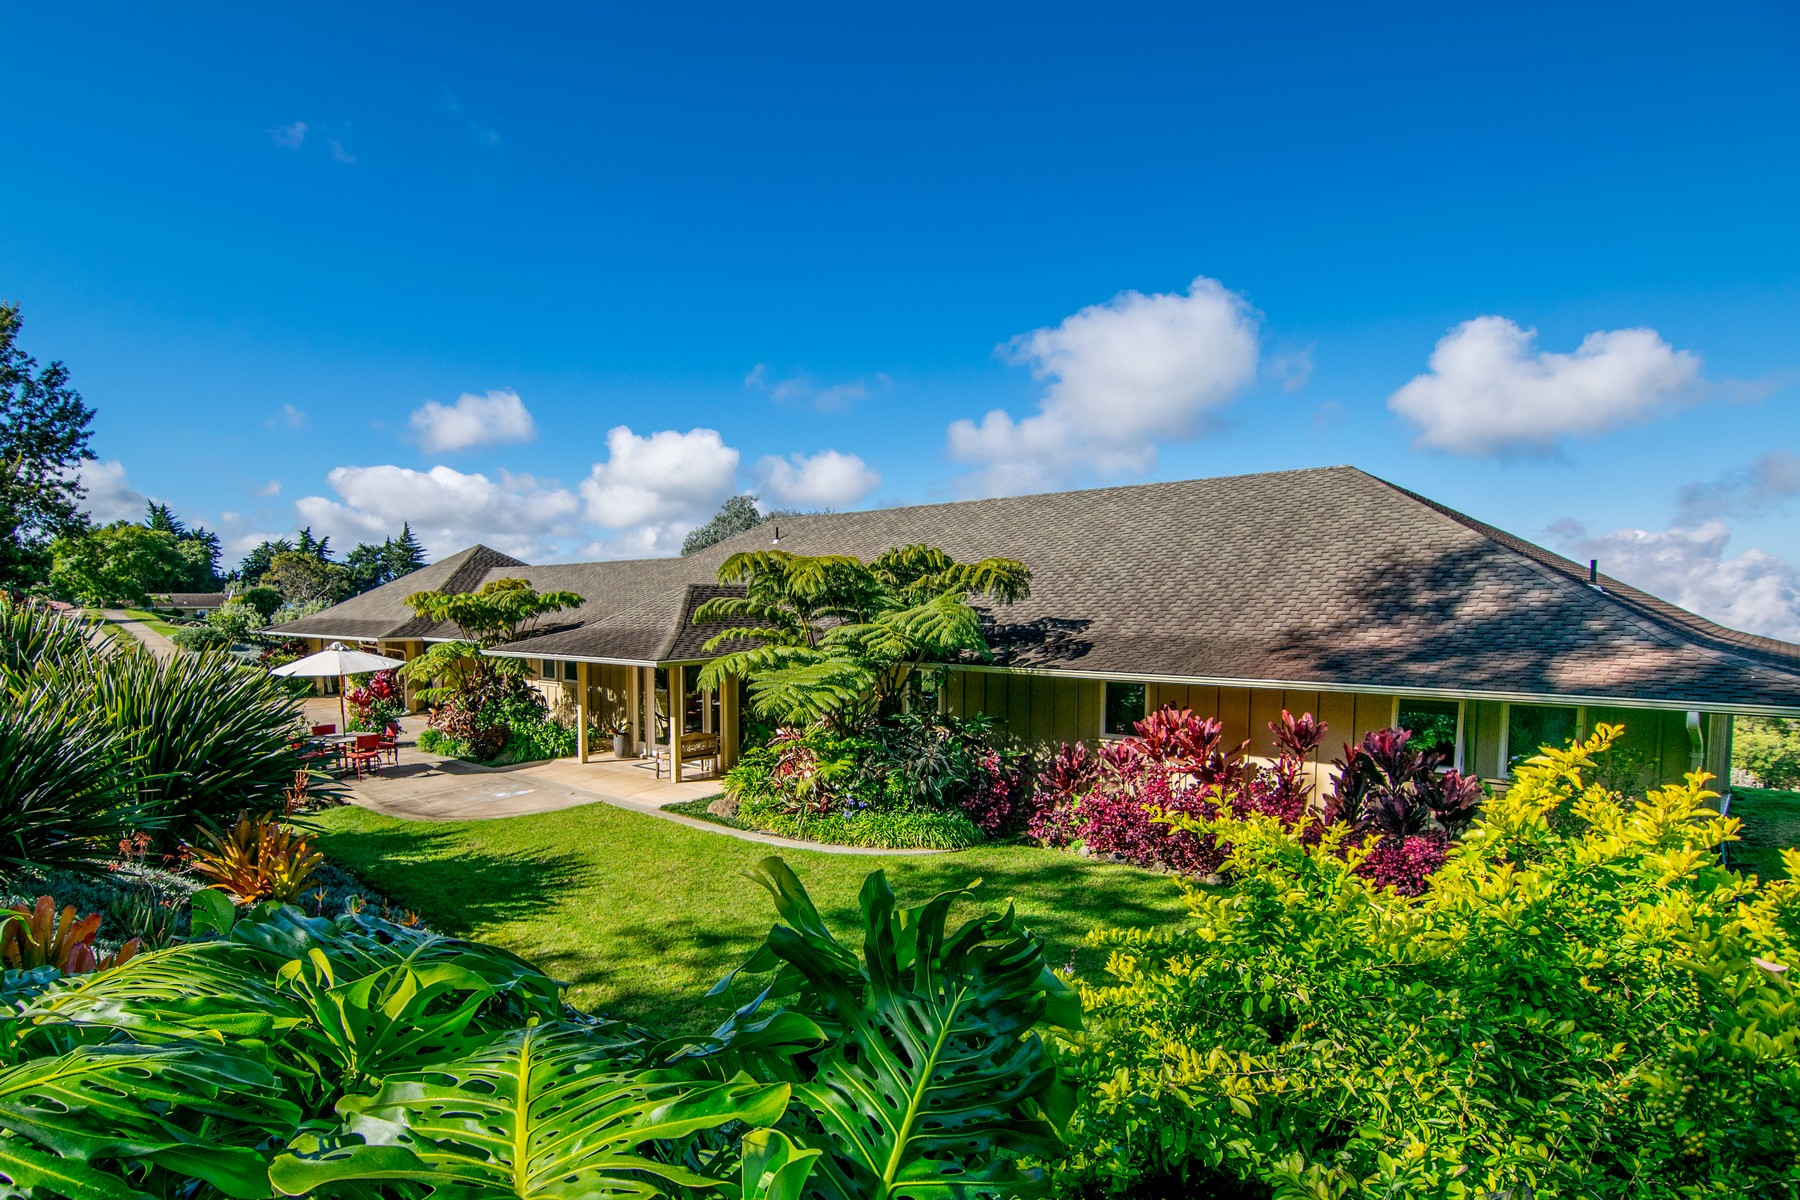 Casa Unifamiliar por un Venta en Live Among Kings In Pastoral Kula, Maui 1265 Pulehuiki Road Kula, Hawaii, 96790 Estados Unidos